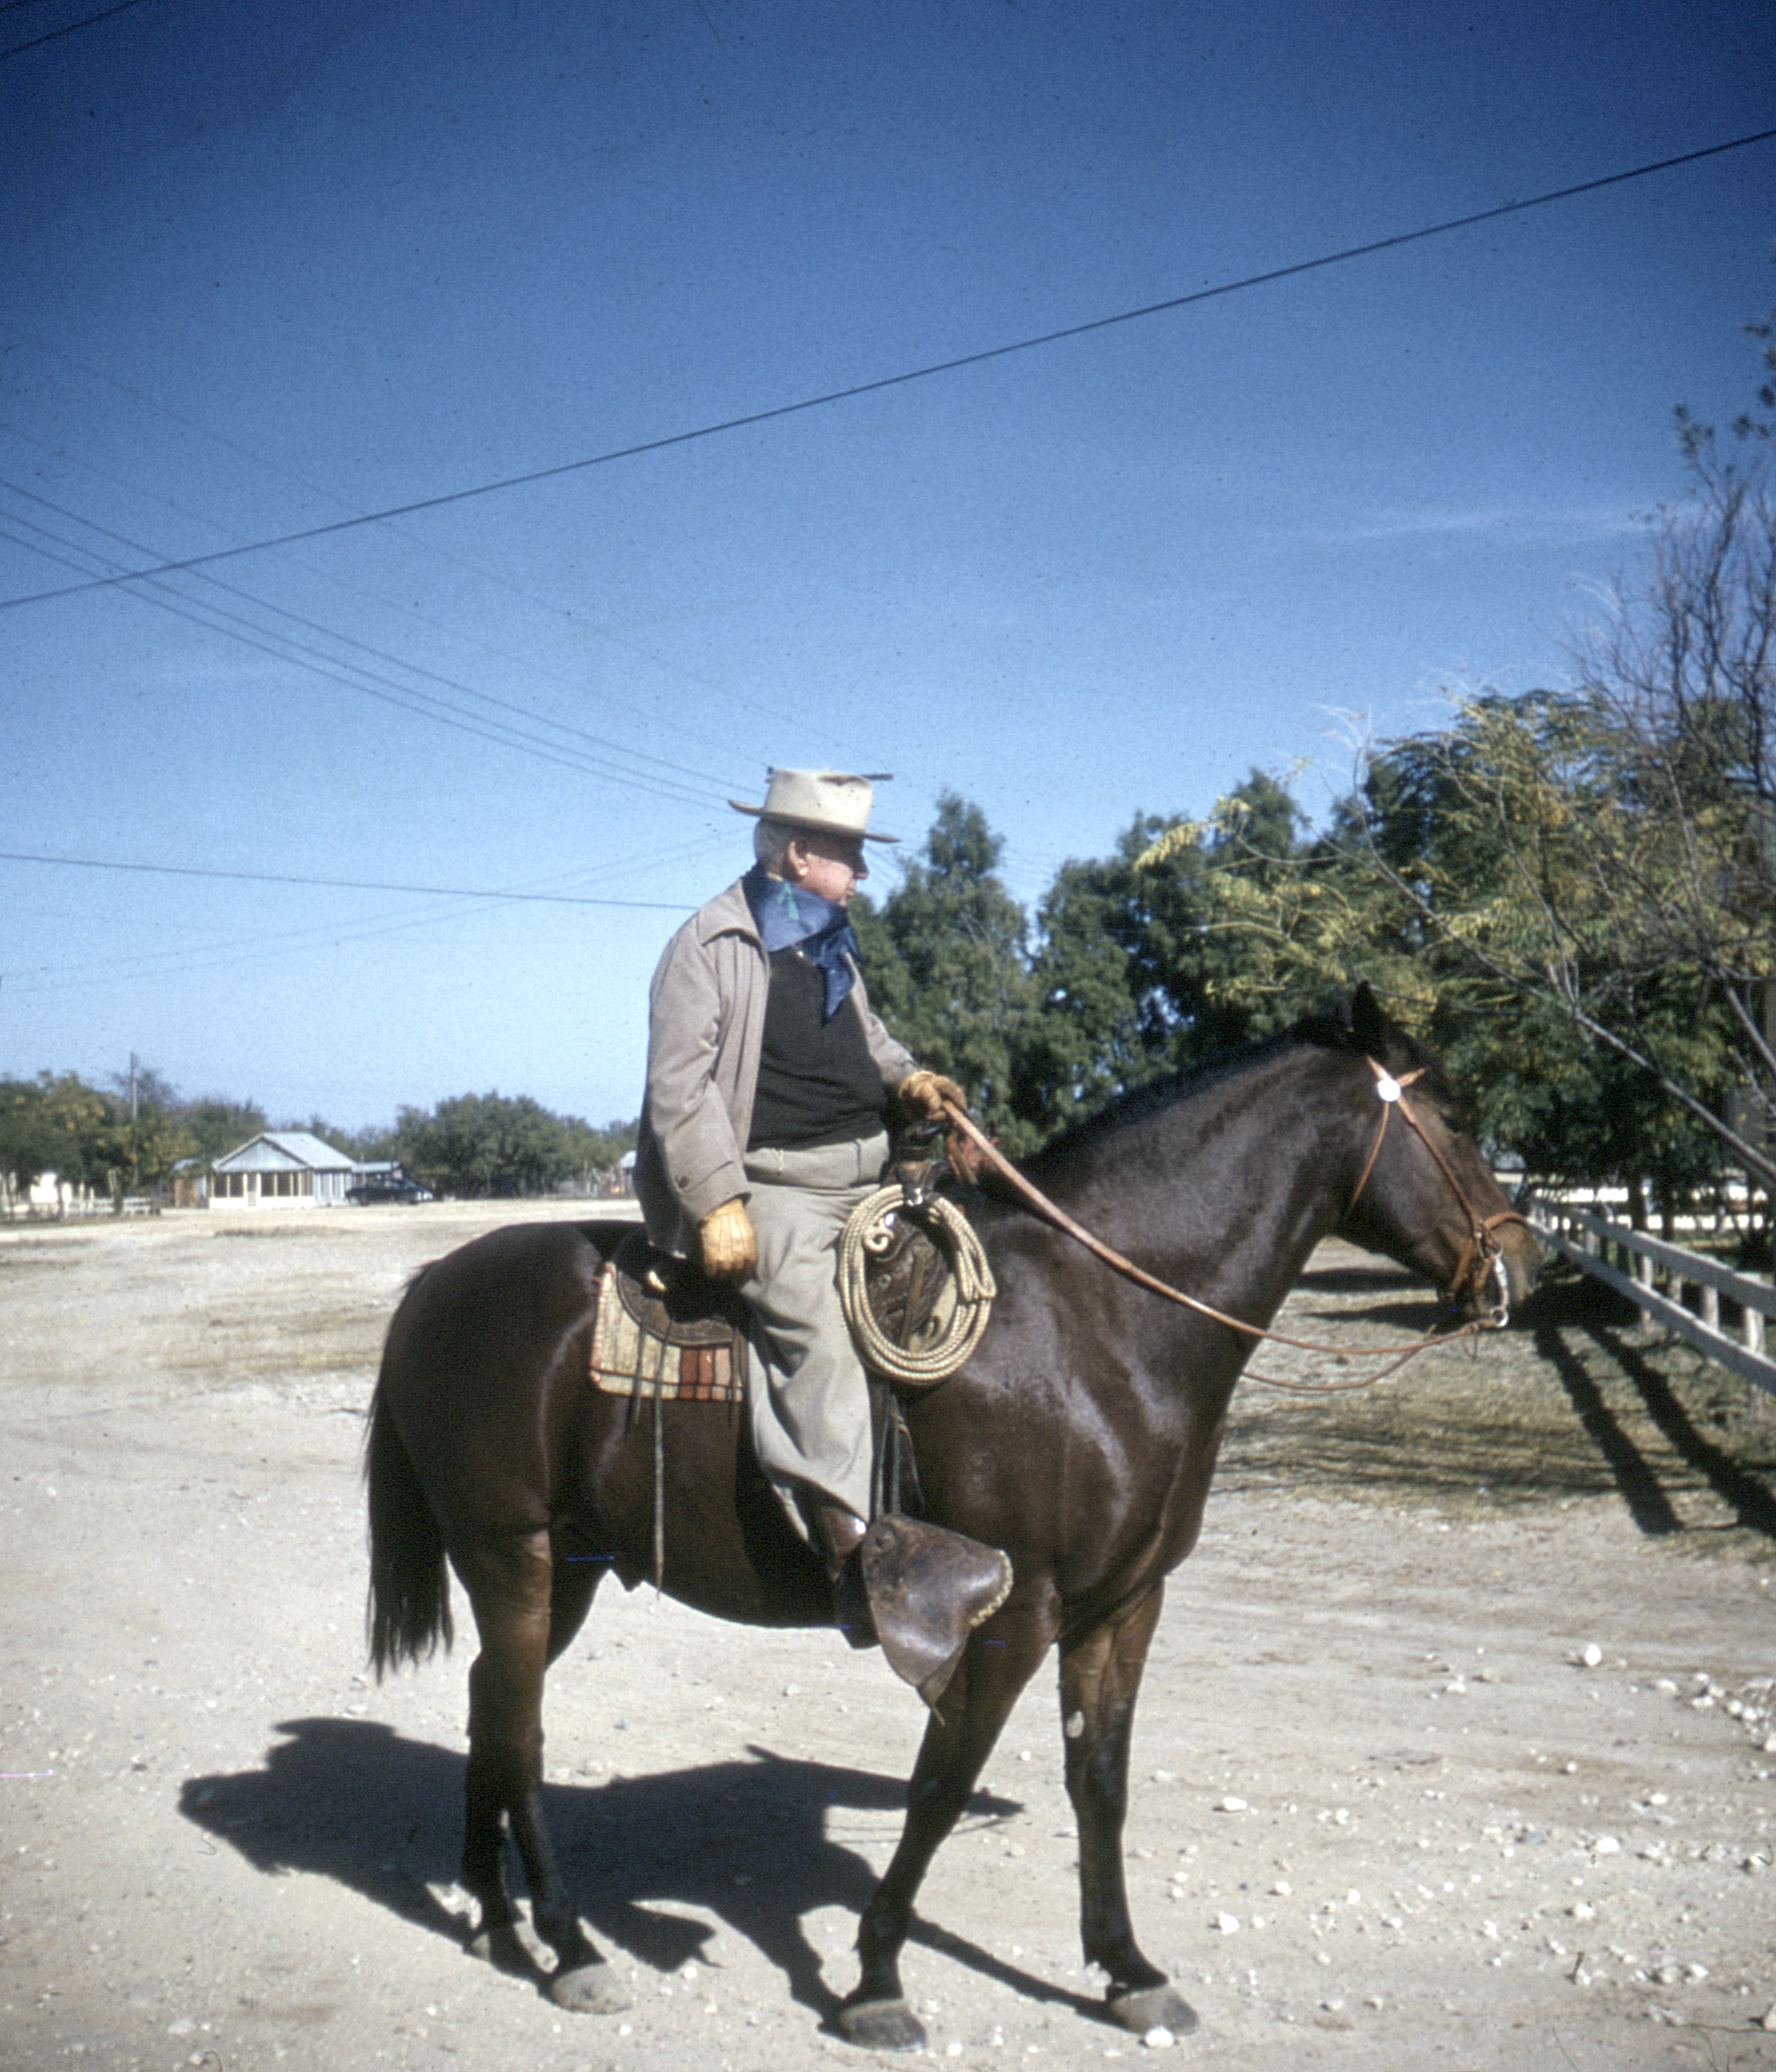 Ewing Halsell on Rooster